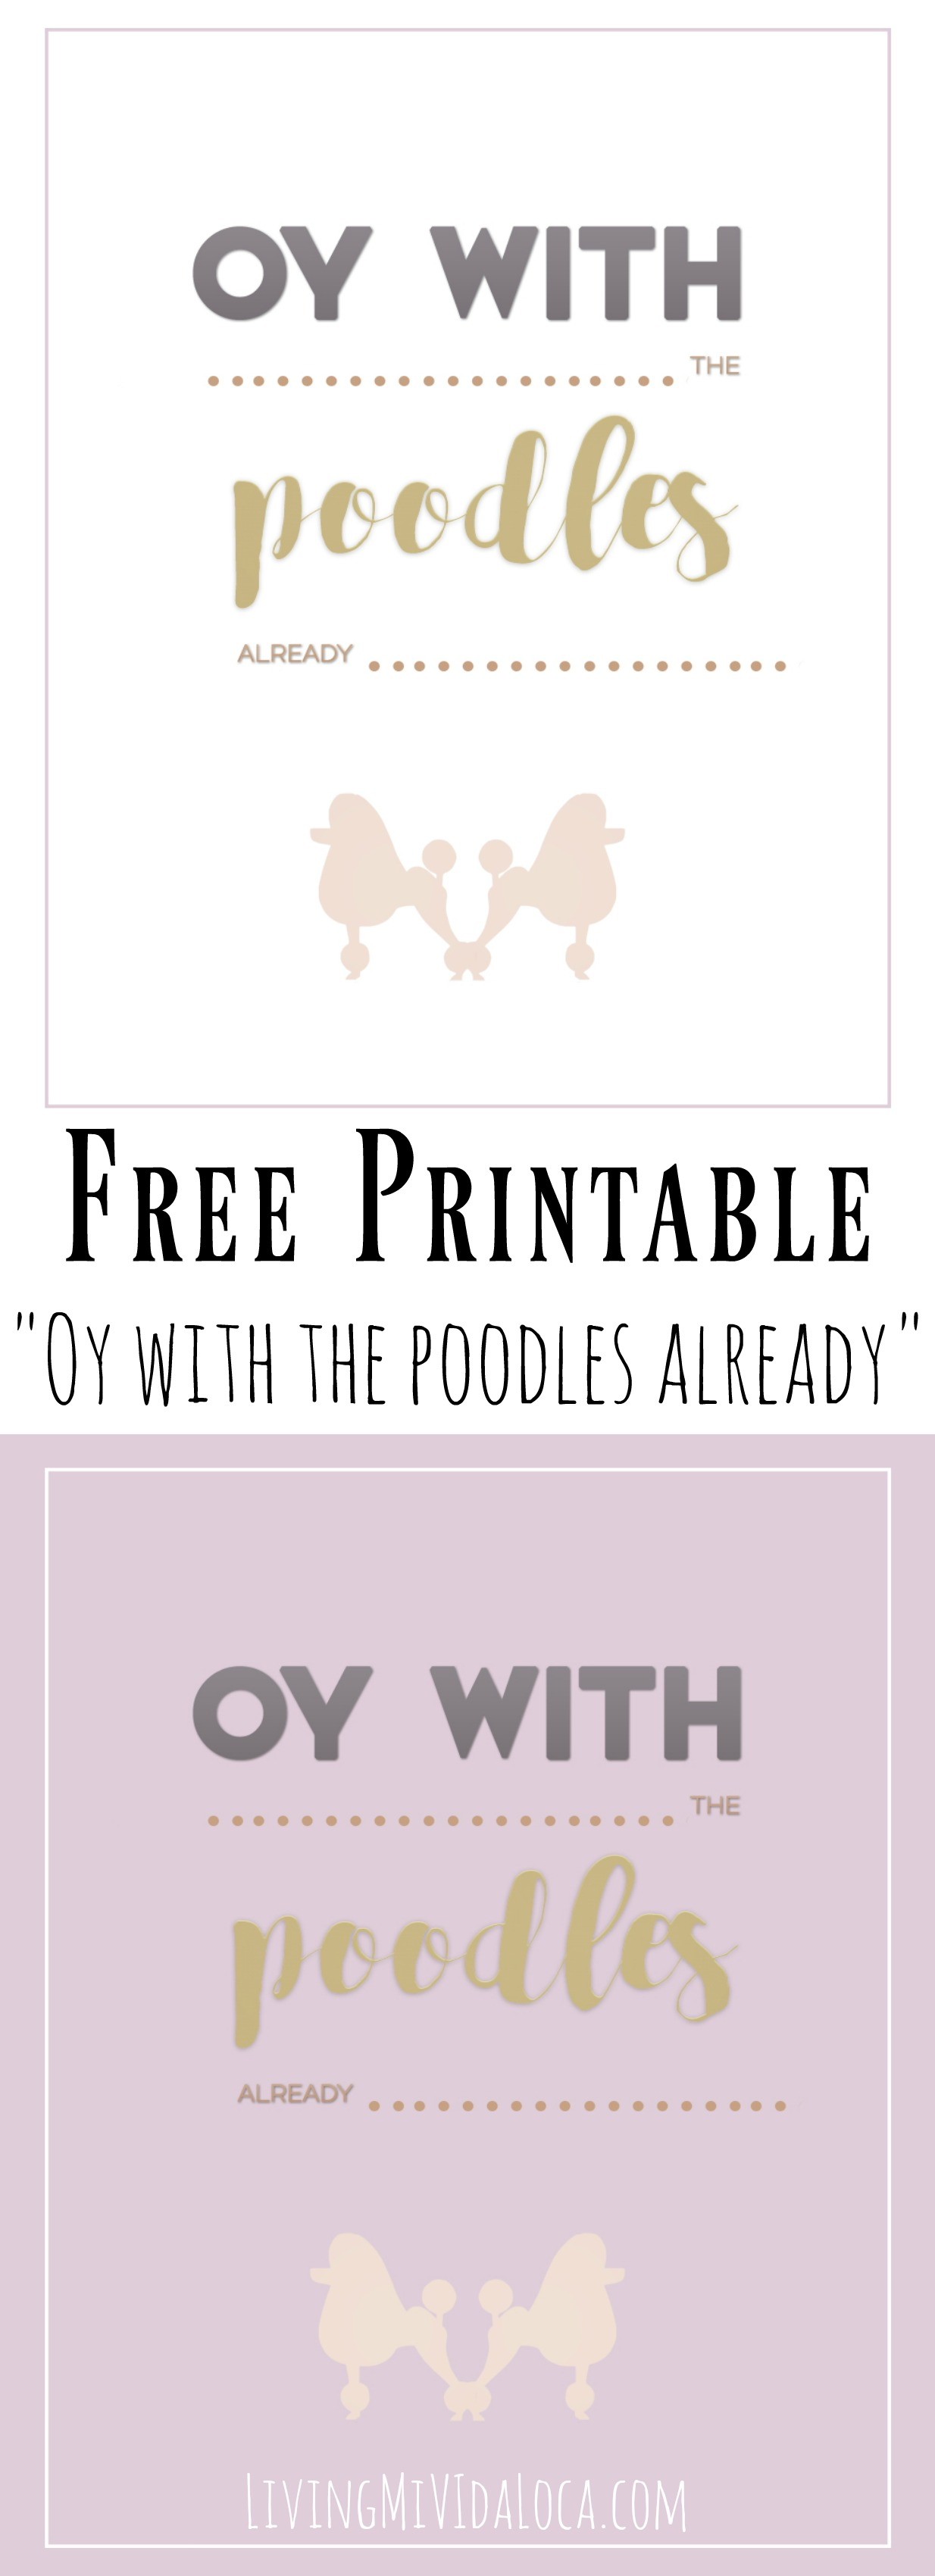 """Oy with the poodles already"" Free Gilmore Girls Printable - LivingMiVidaLoca.com"